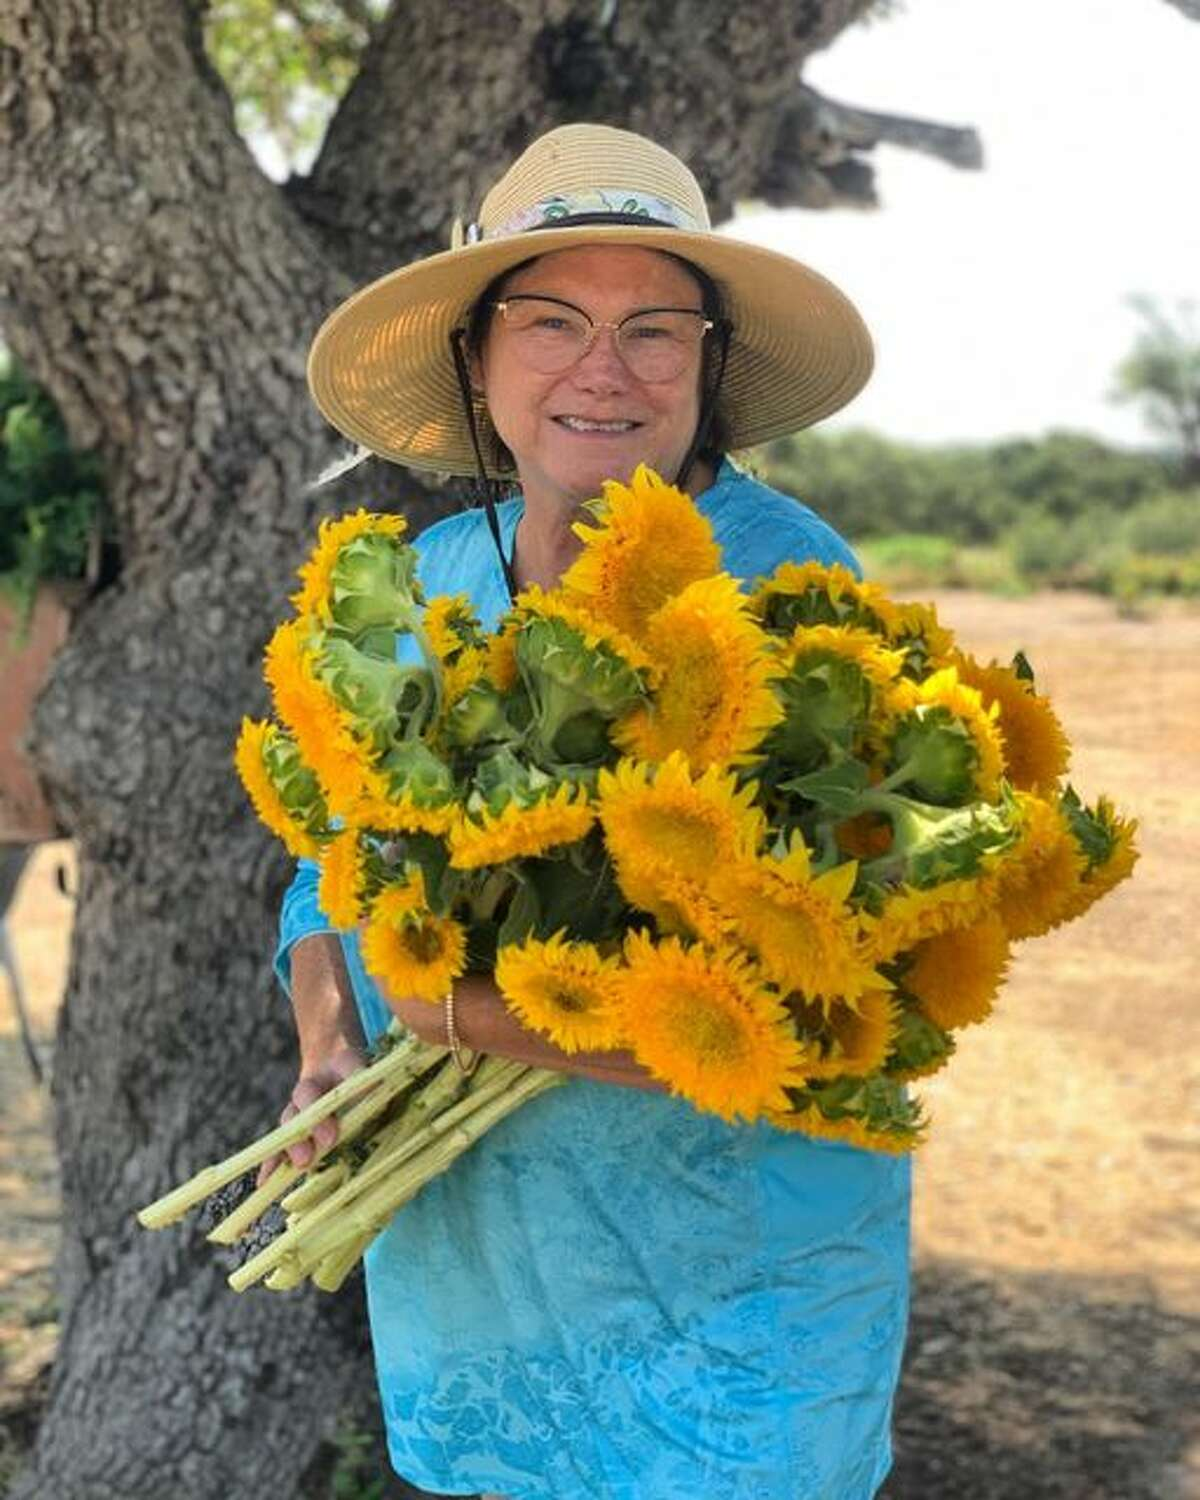 Paul says he has about 100 sunflowers a week. For an additional $35, guests can take home their own bouquet built with flowers picked during their tour.